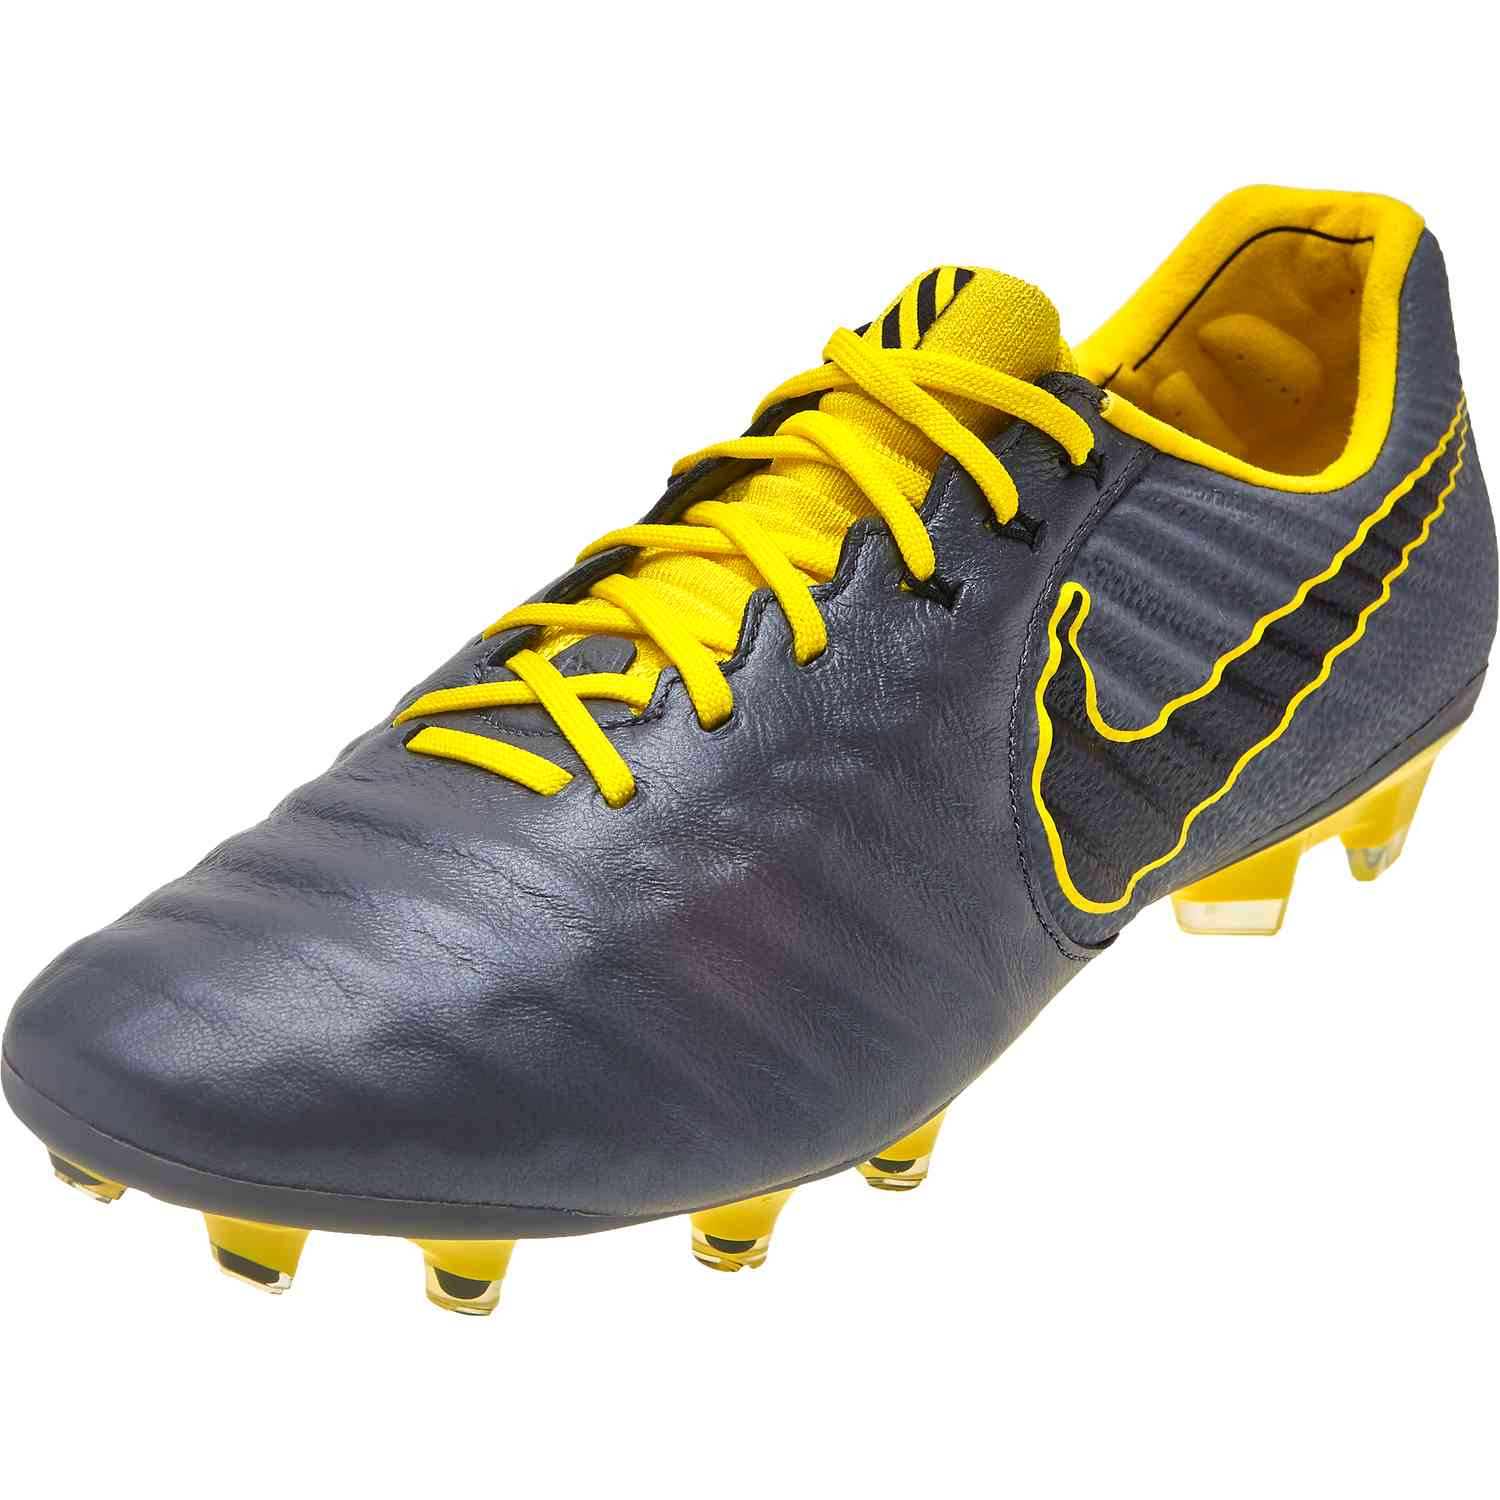 4190508324ca9 Nike Tiempo Legend 7 Elite FG - Game Over - SoccerPro